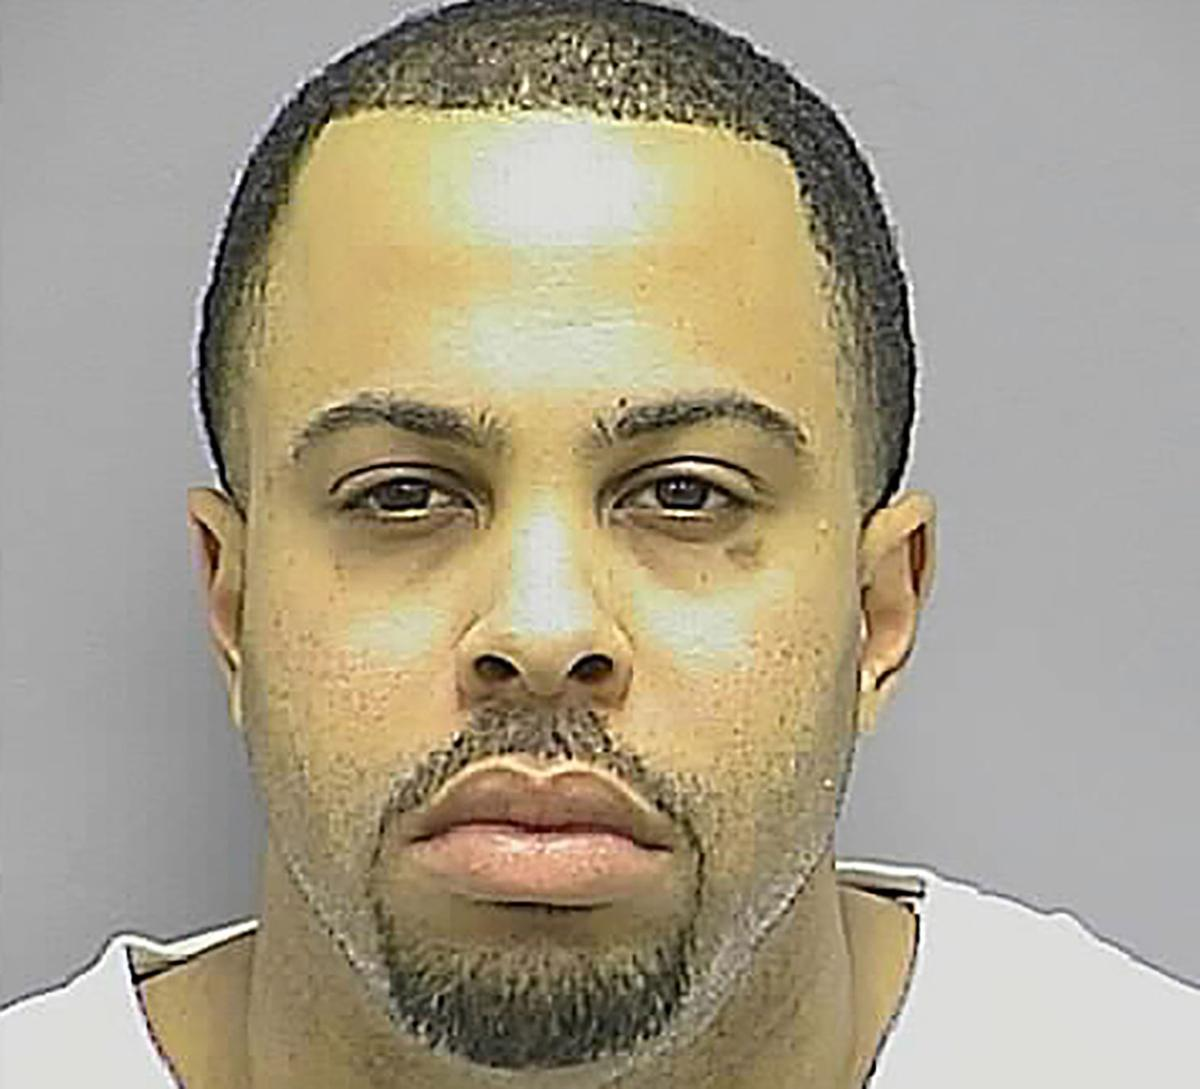 Frederick man indicted by federal grand jury for heroin conspiracy